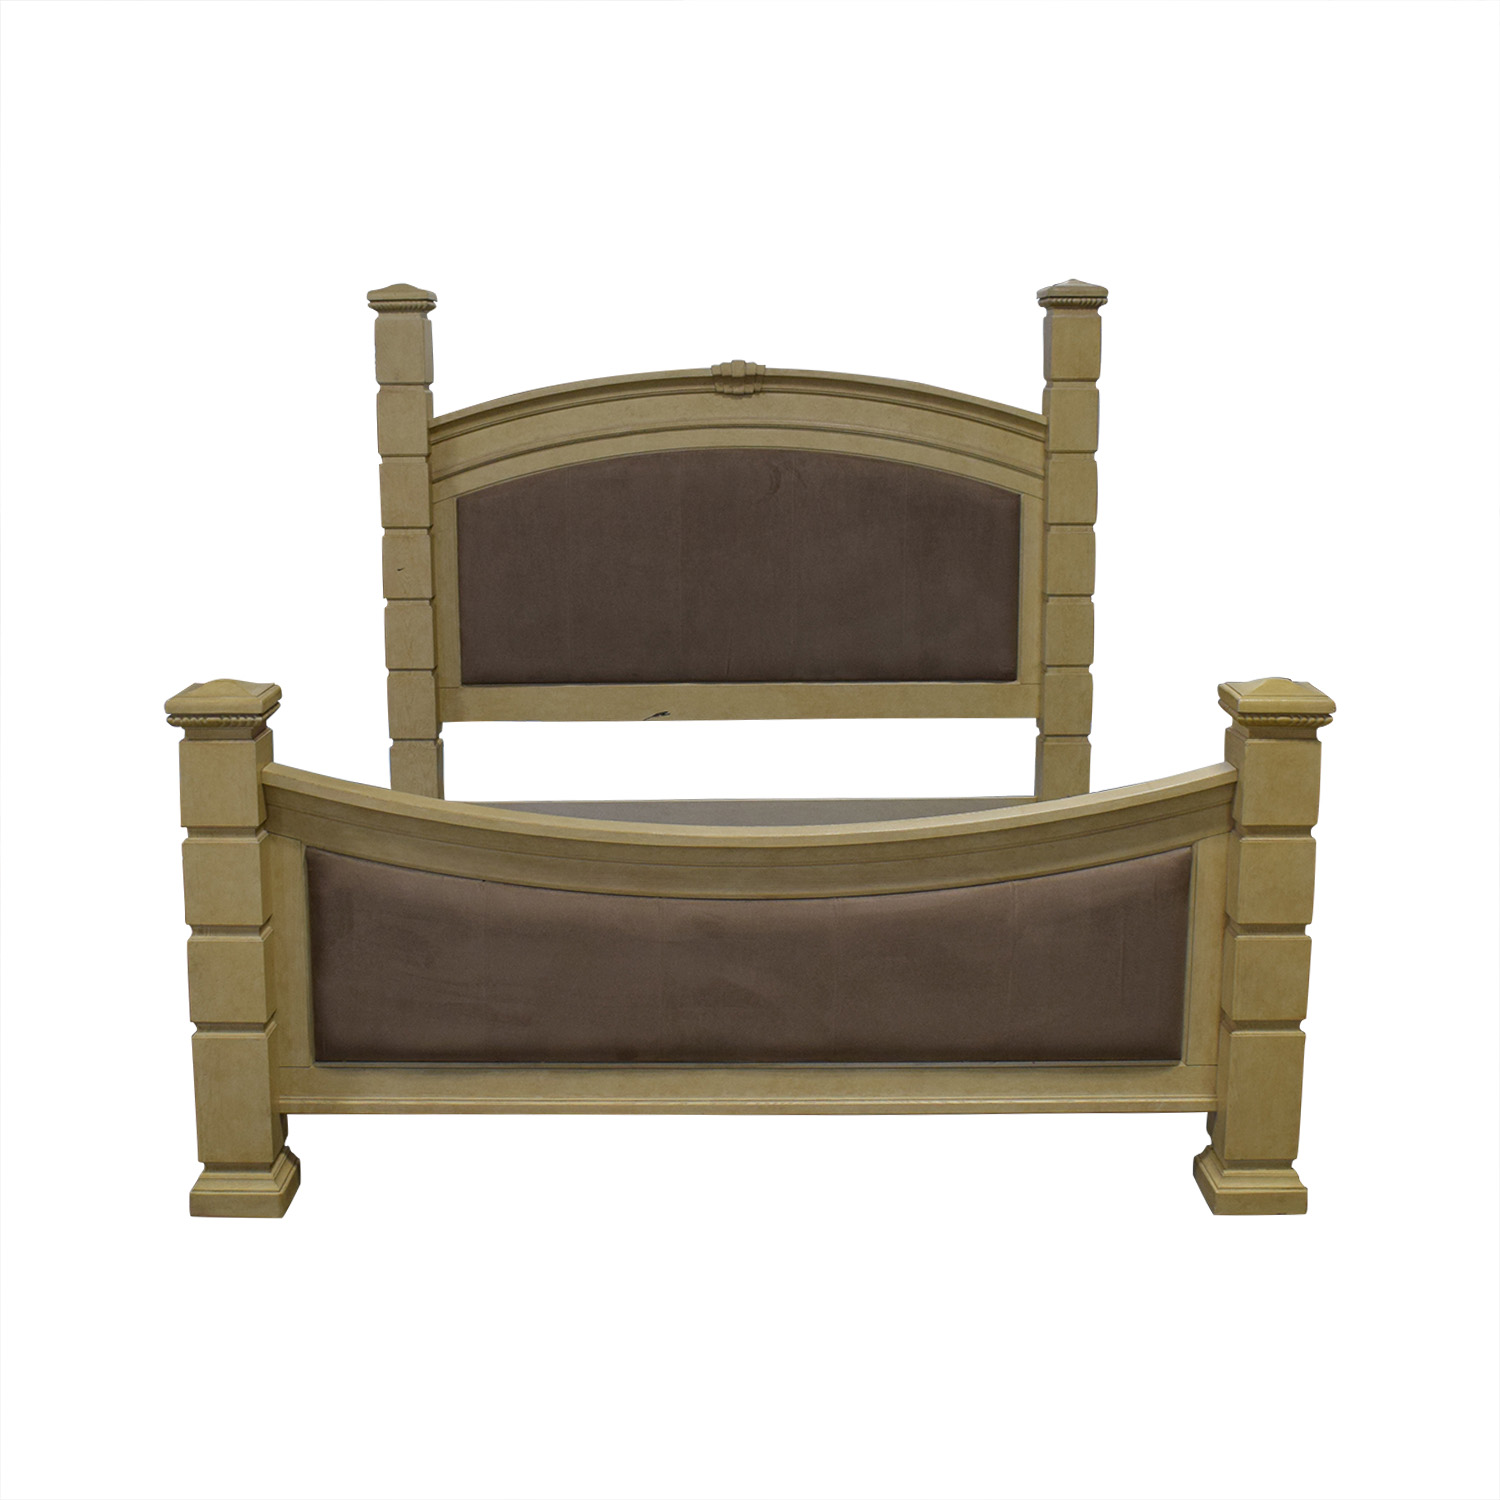 Rooms To Go Tan And Beige King Bed Frame Beds